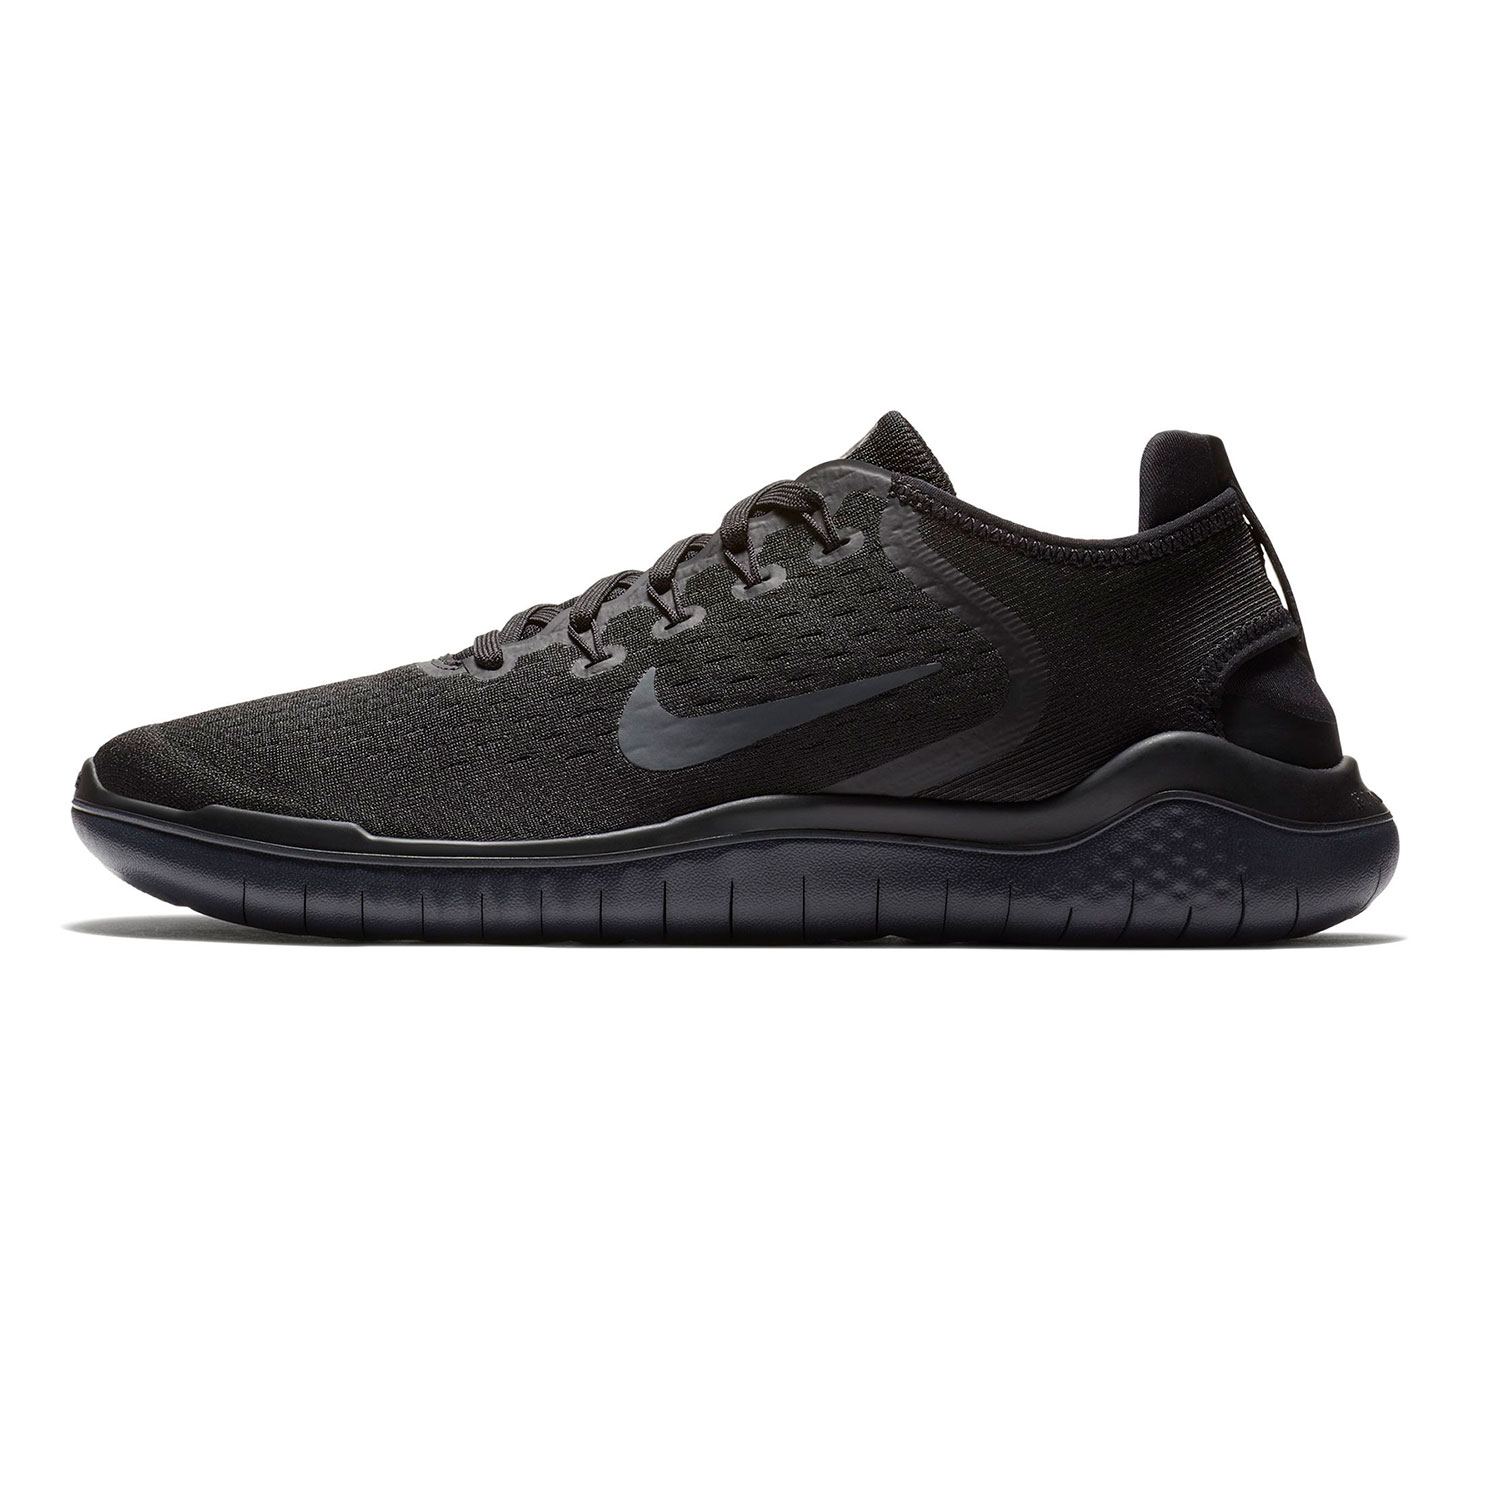 Nike Free RN 2018 Mens Running Shoe